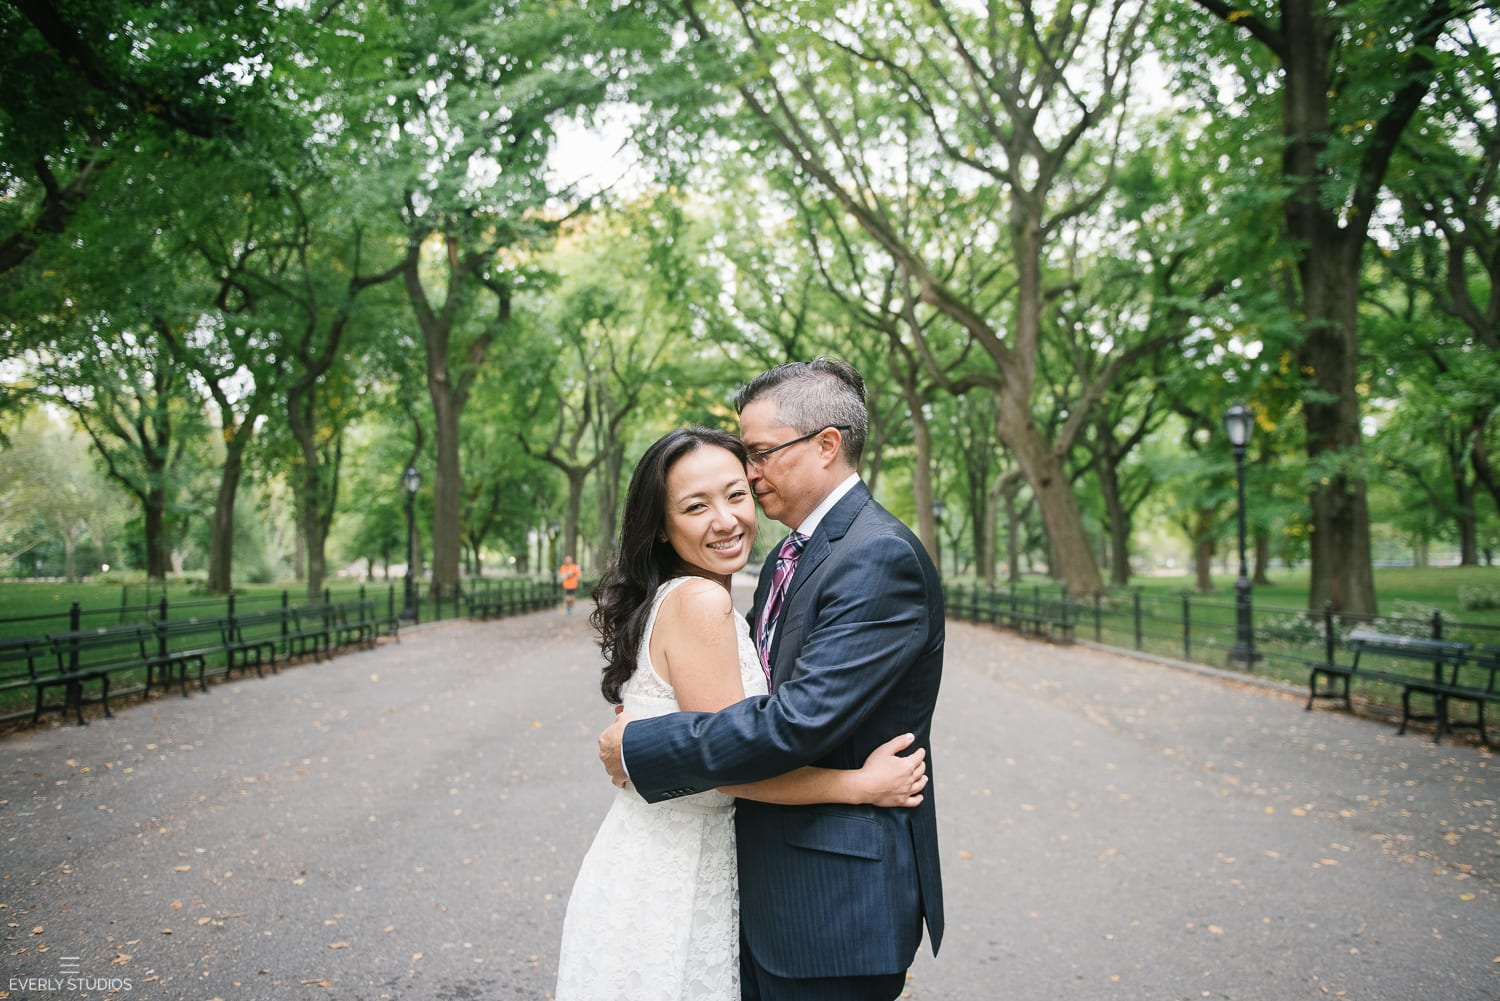 Central Park engagement photos. Photos by New York wedding photographer Everly Studios, www.everlystudios.com